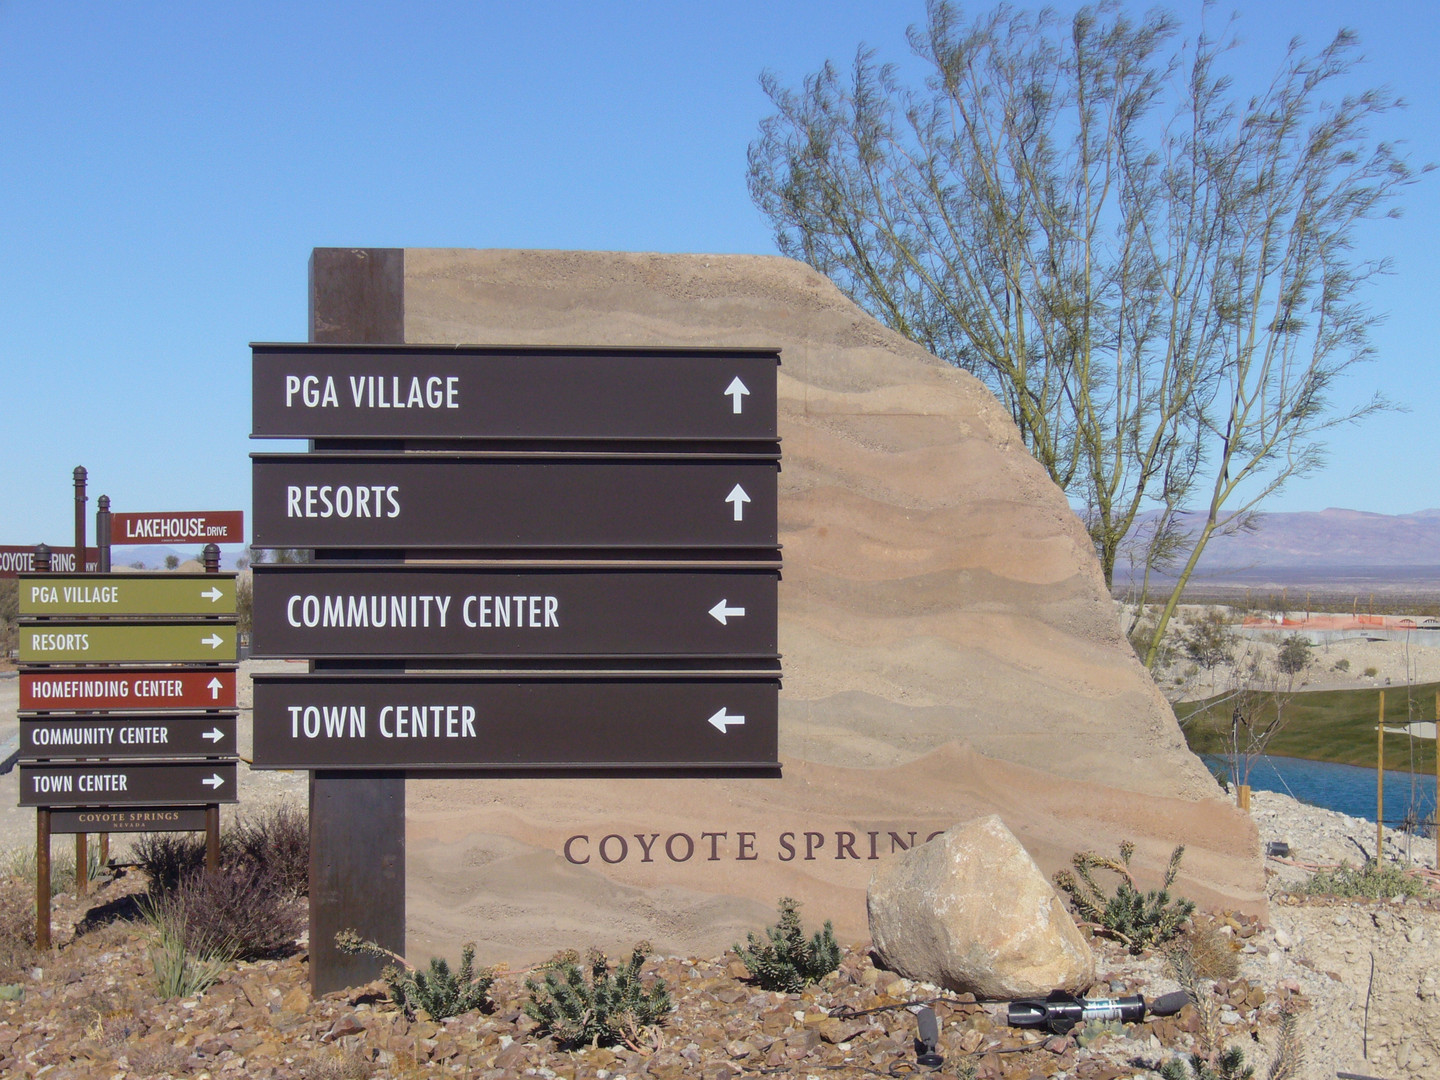 Coyote Springs DG sign